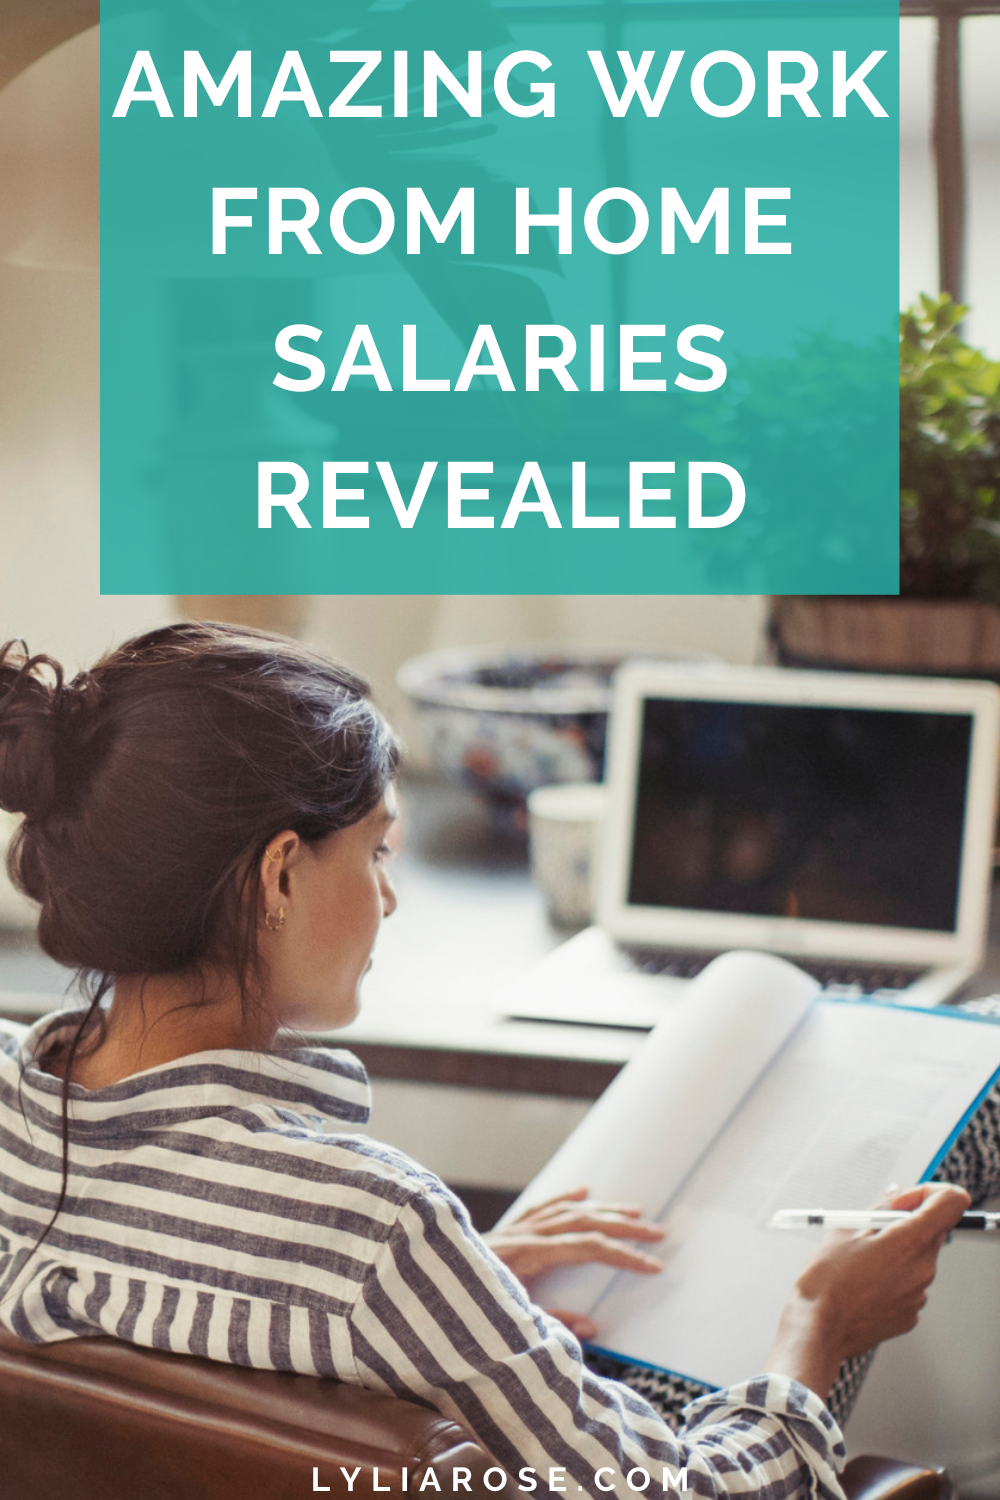 Amazing work from home salaries revealed